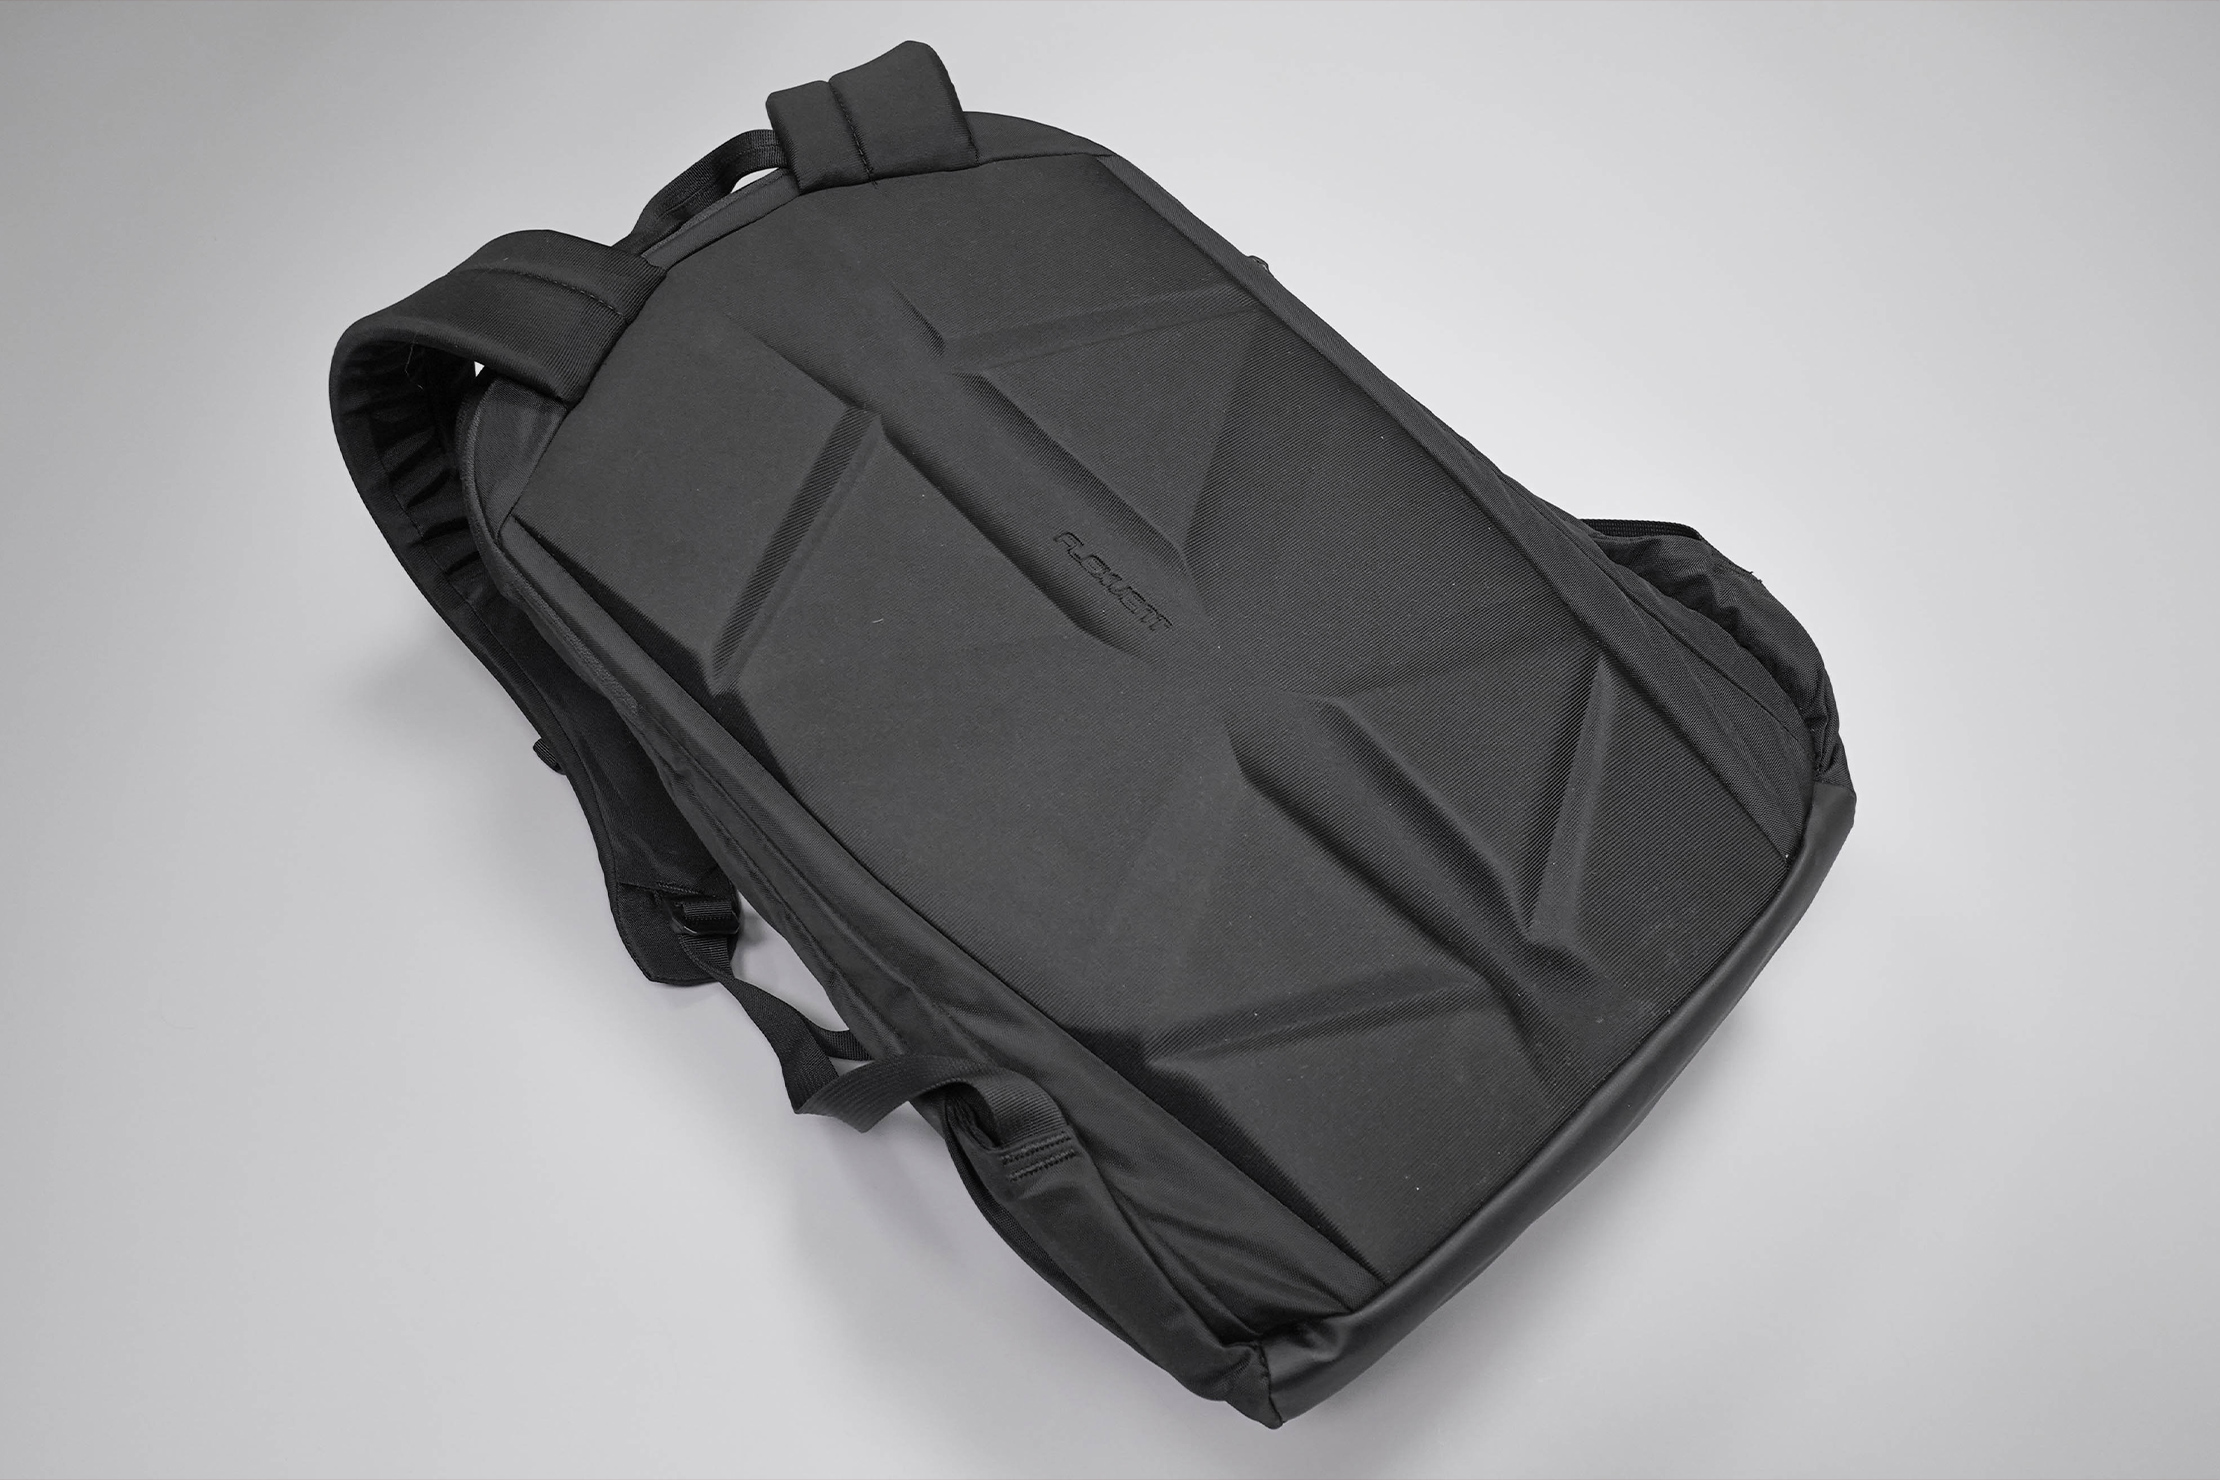 The North Face Kaban Backpack Back Panel